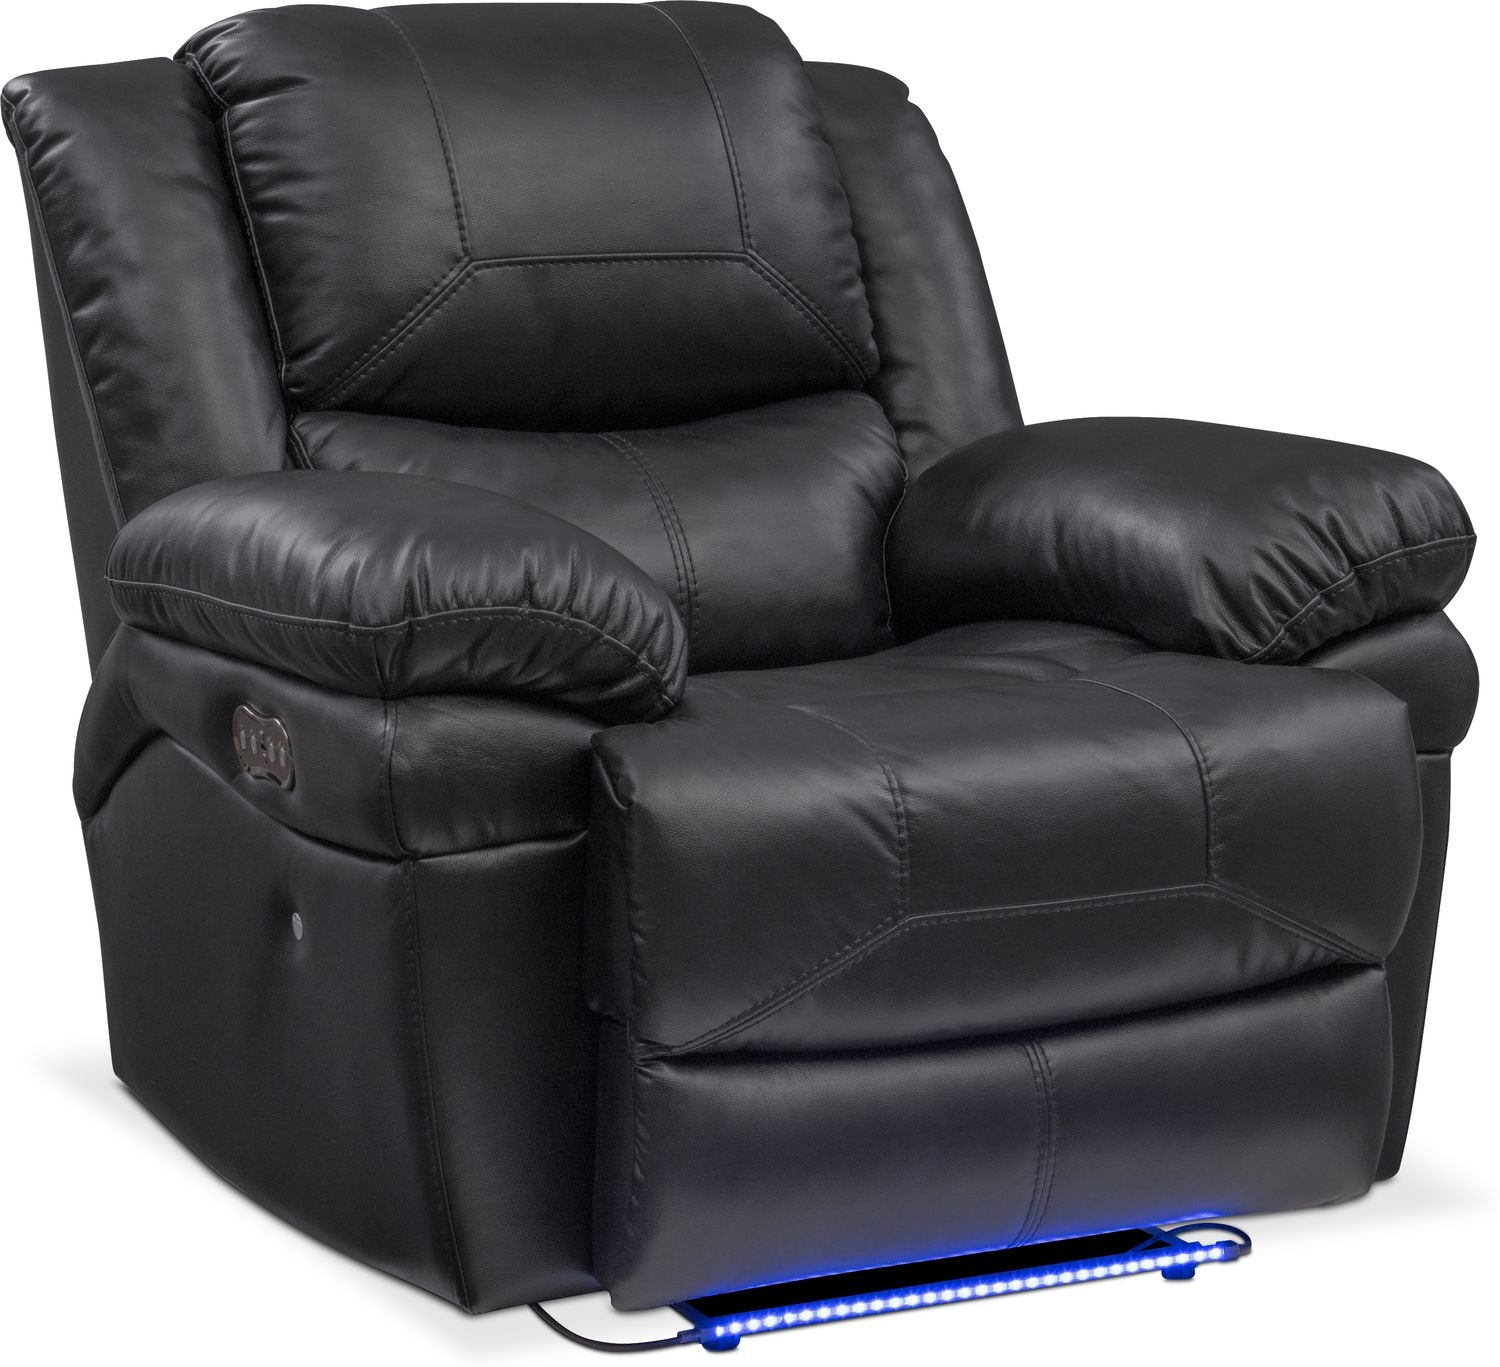 Living Room Furniture - Monza Power Recliner - Black